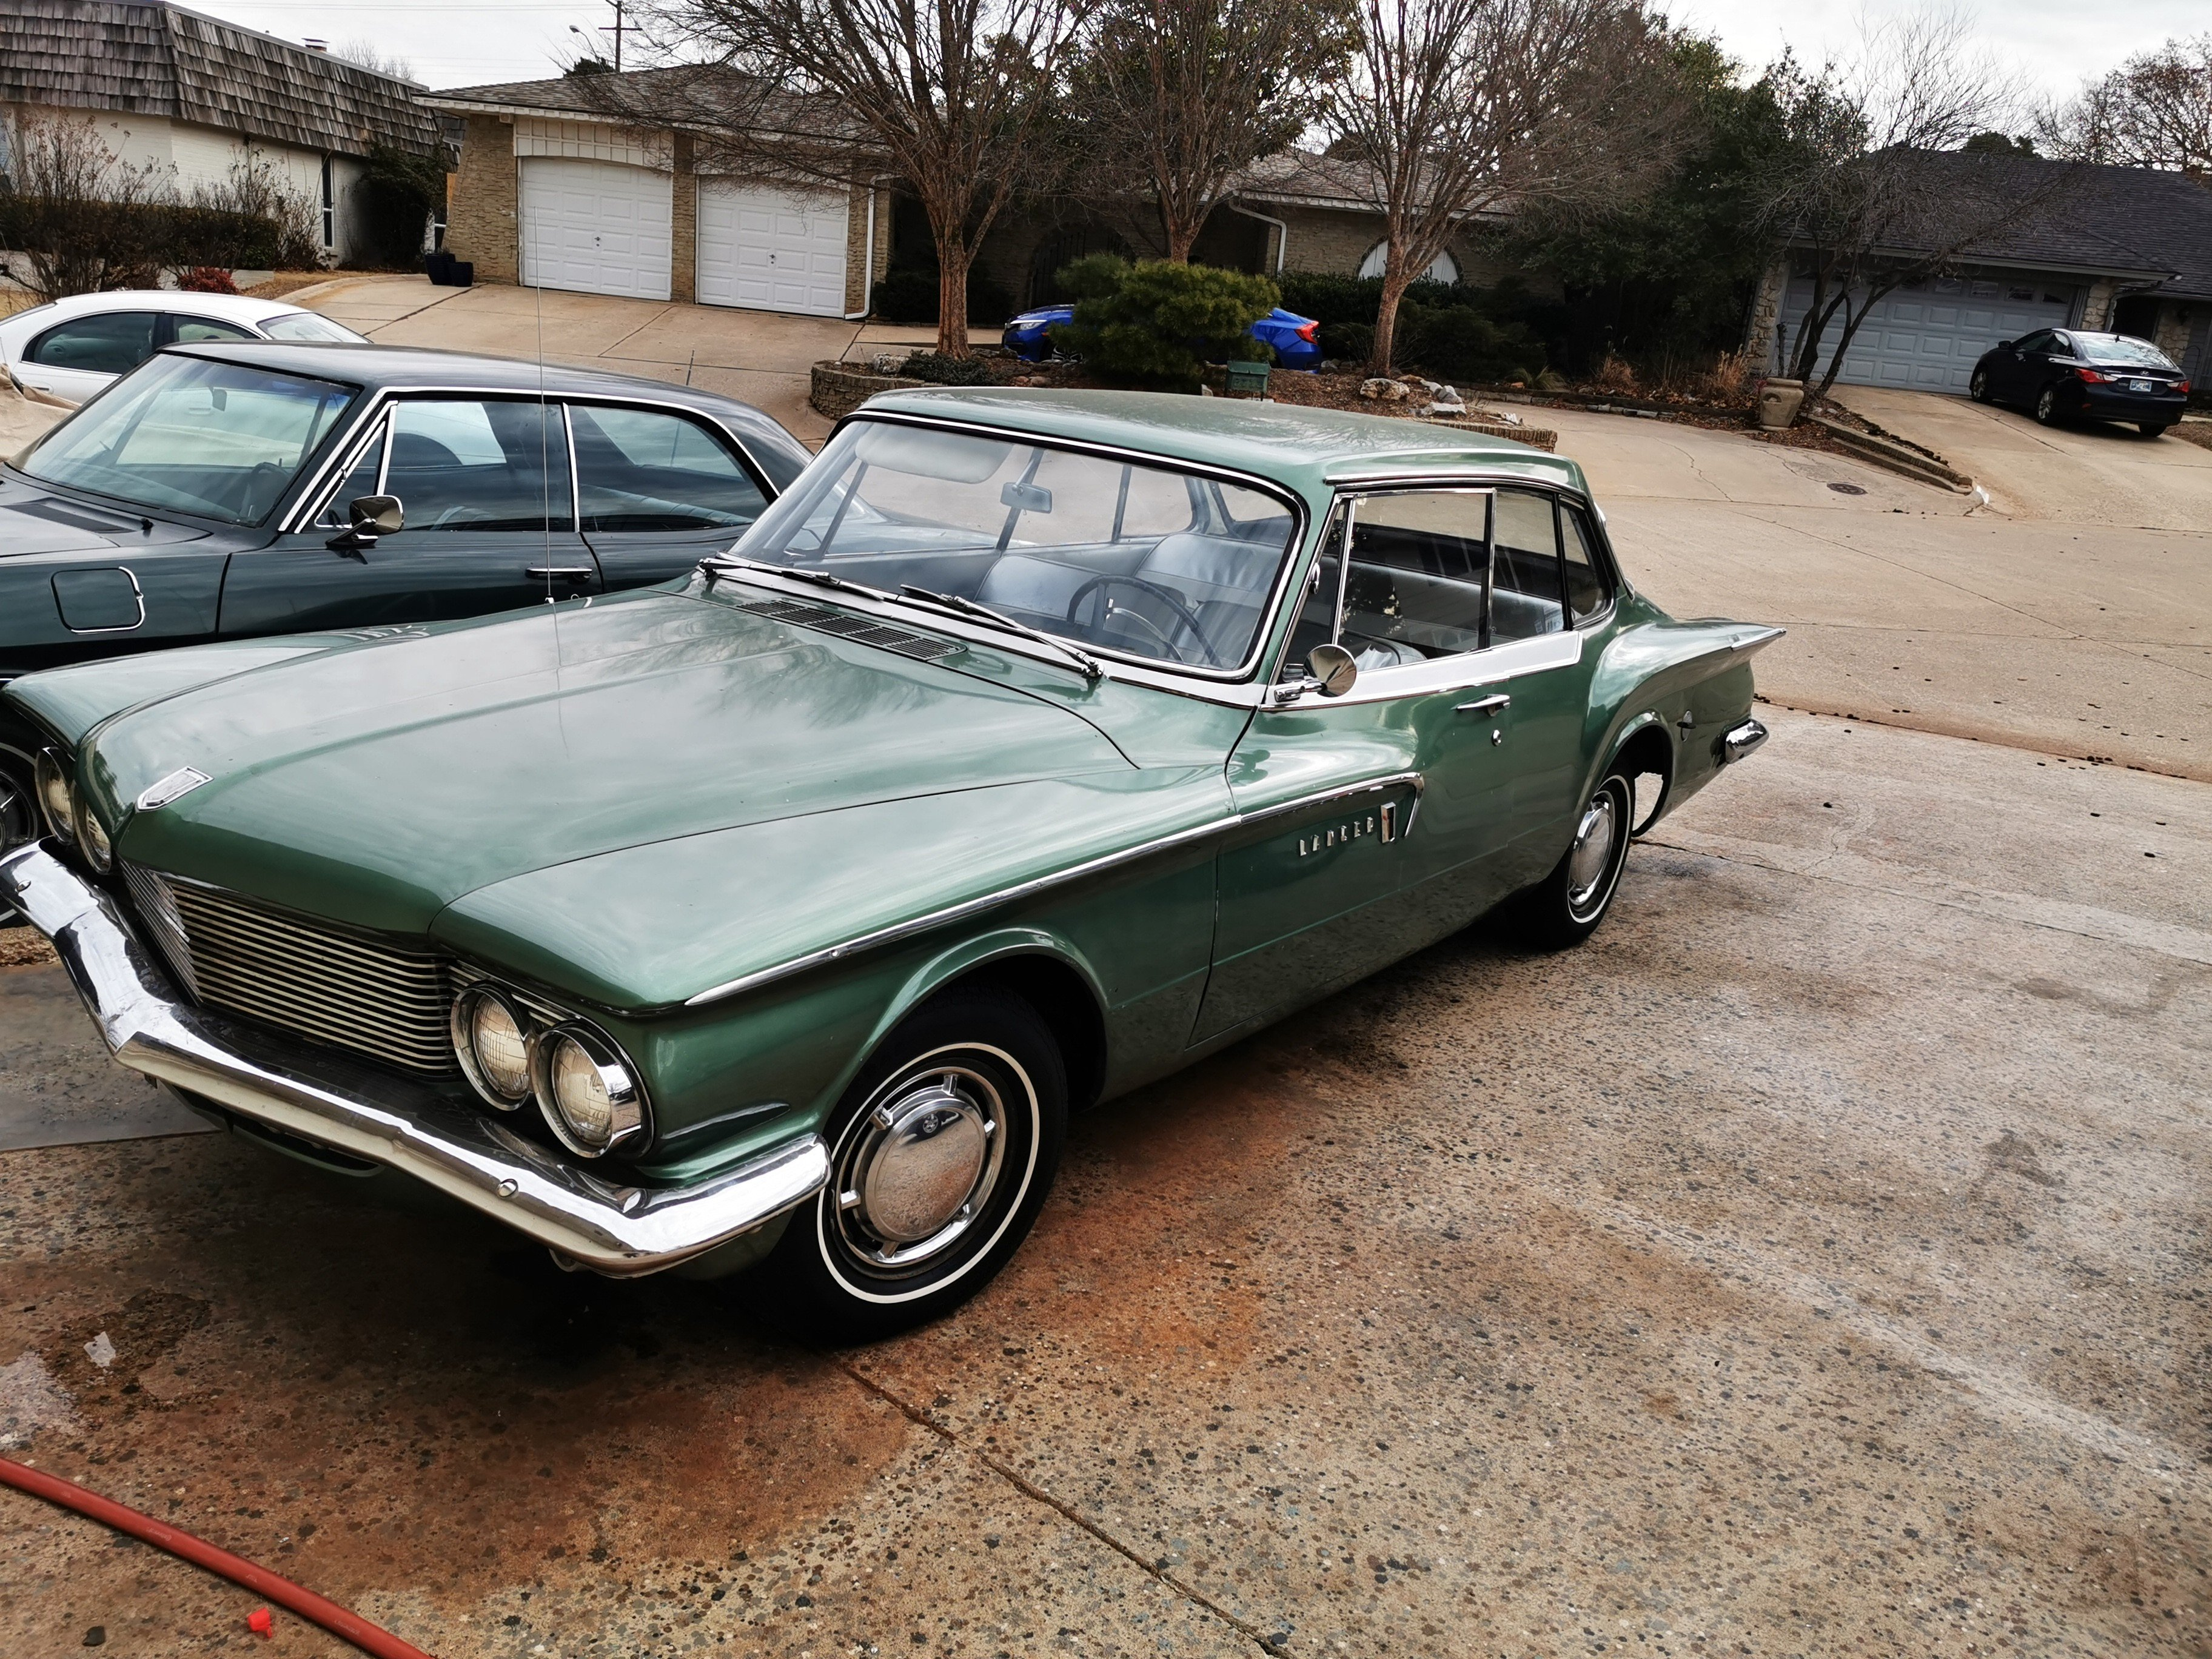 1961 Dodge Lancer Classics For Sale Classics On Autotrader